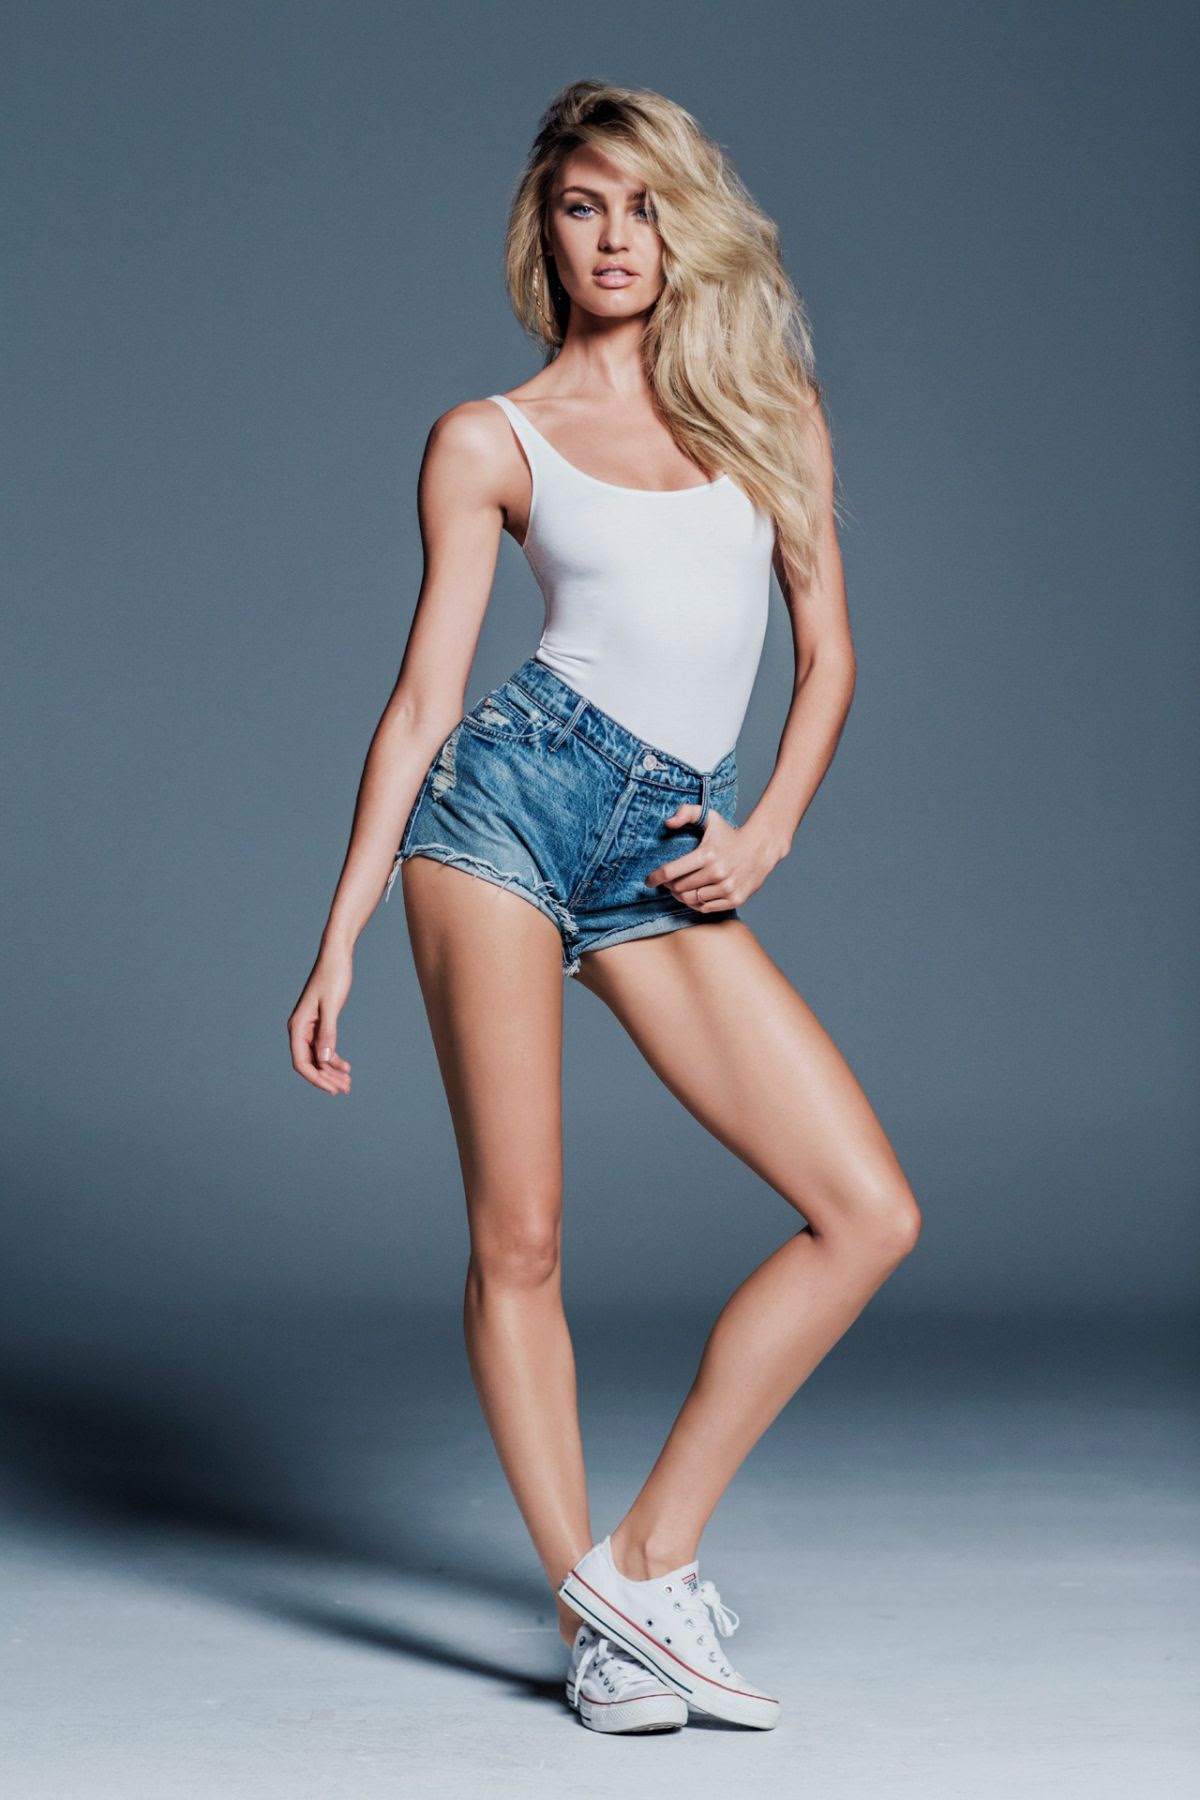 CANDICE SWANEPOEL - Mother Denim 2015 Promos